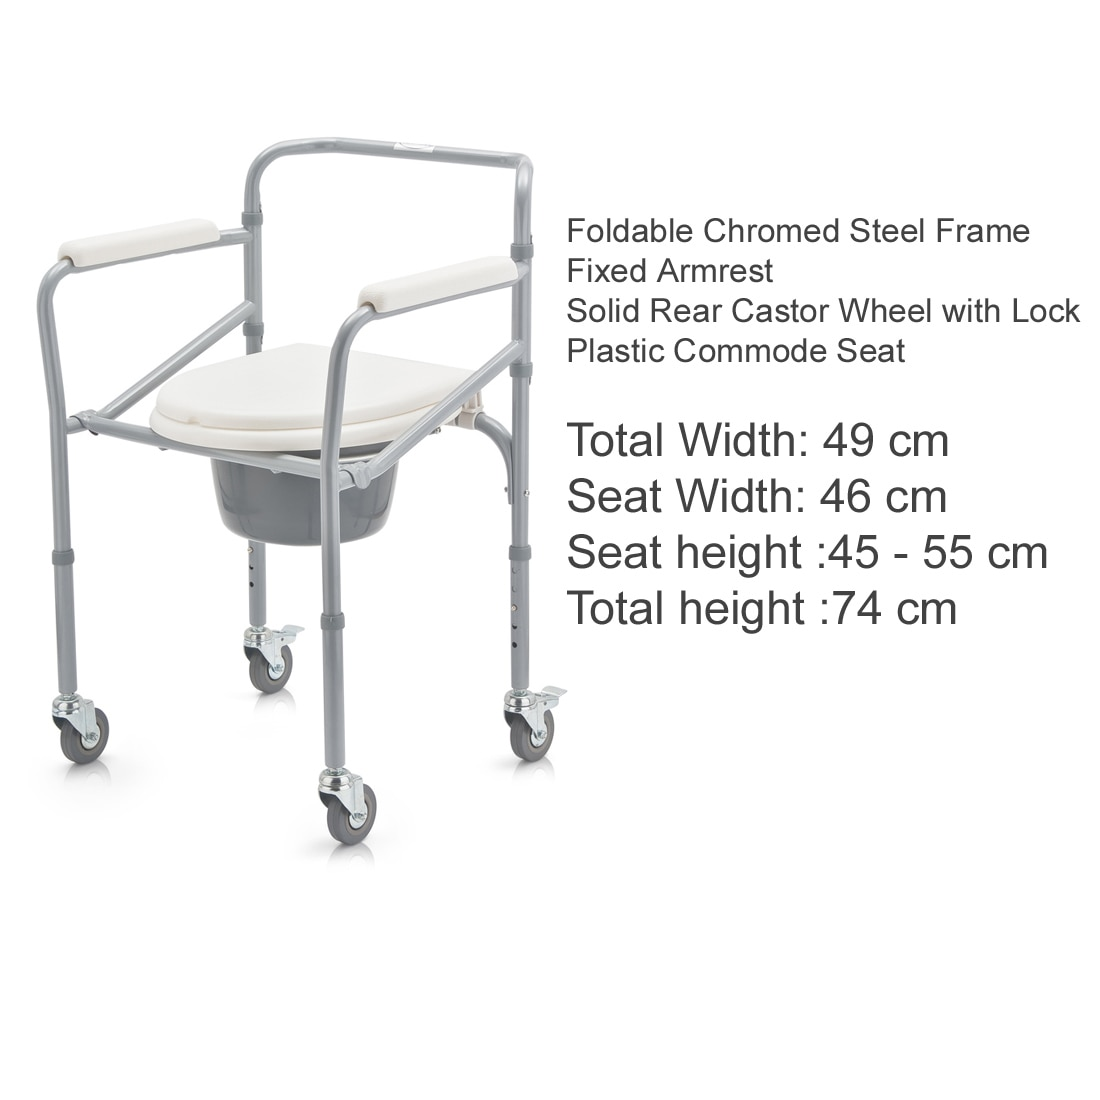 steel chair olx kampa accessories folding chairs bangalore